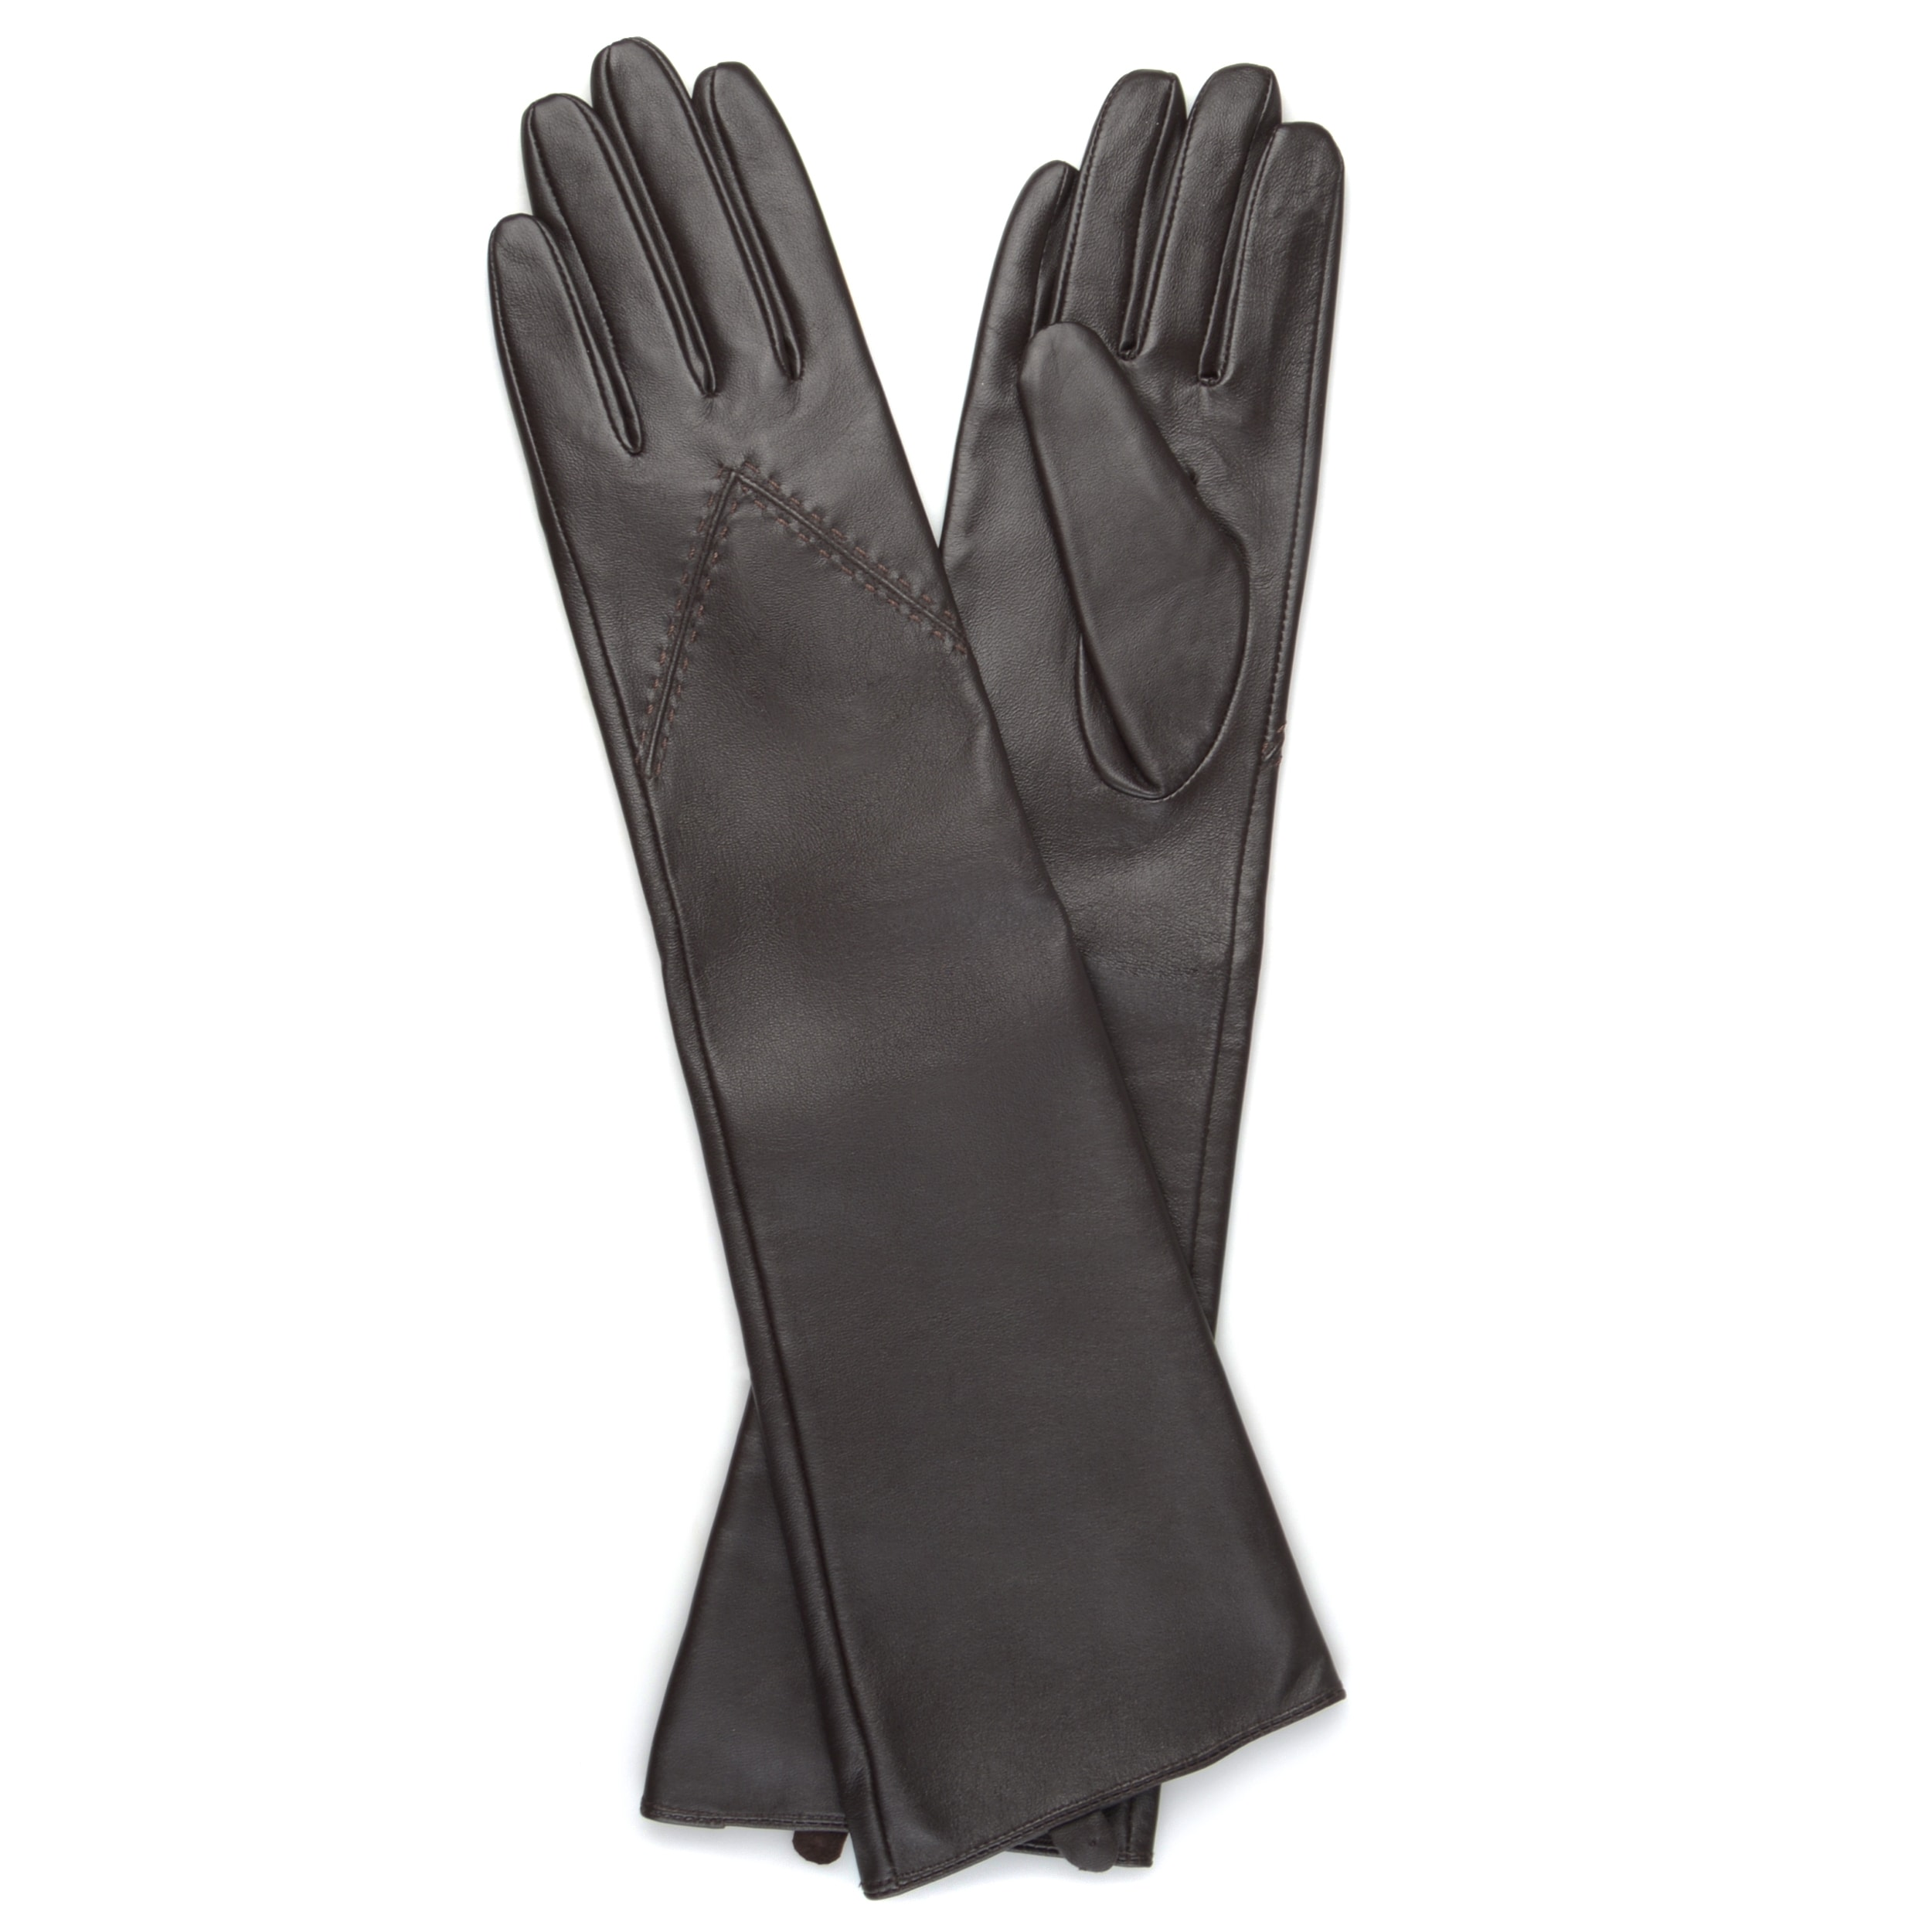 47a002f5aa593 Gloves | Find Great Accessories Deals Shopping at Overstock